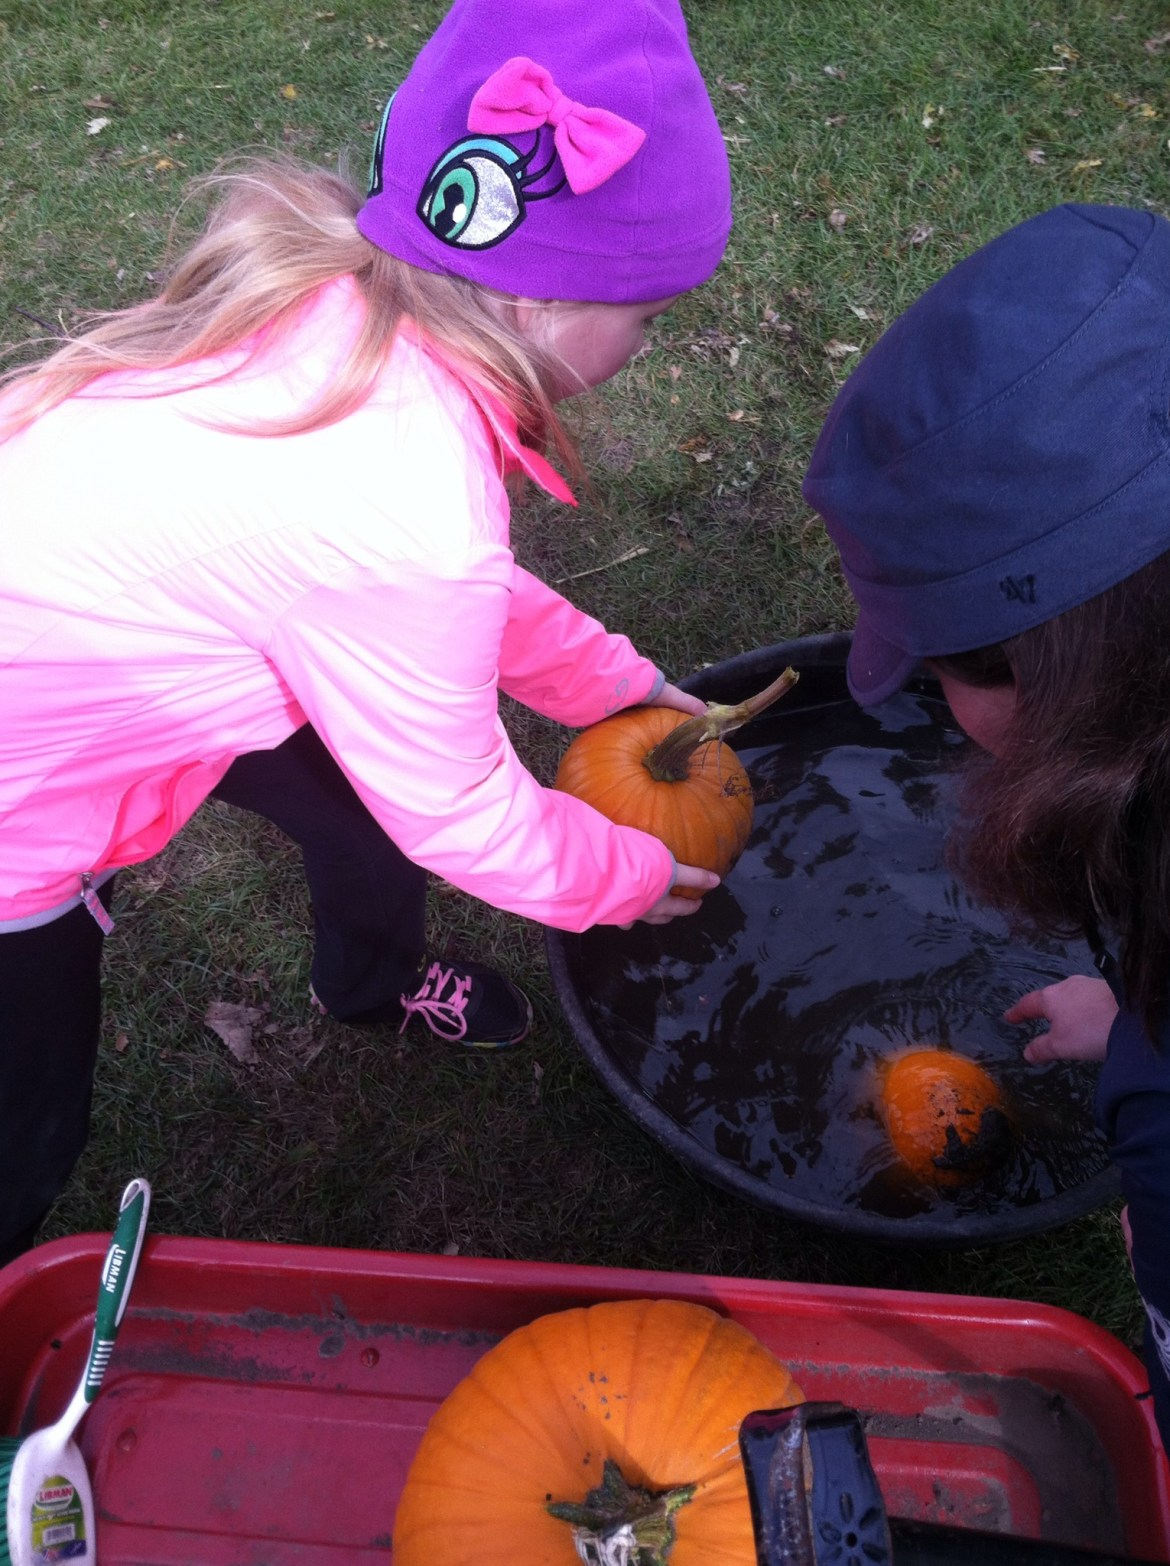 Cleaning pumpkins